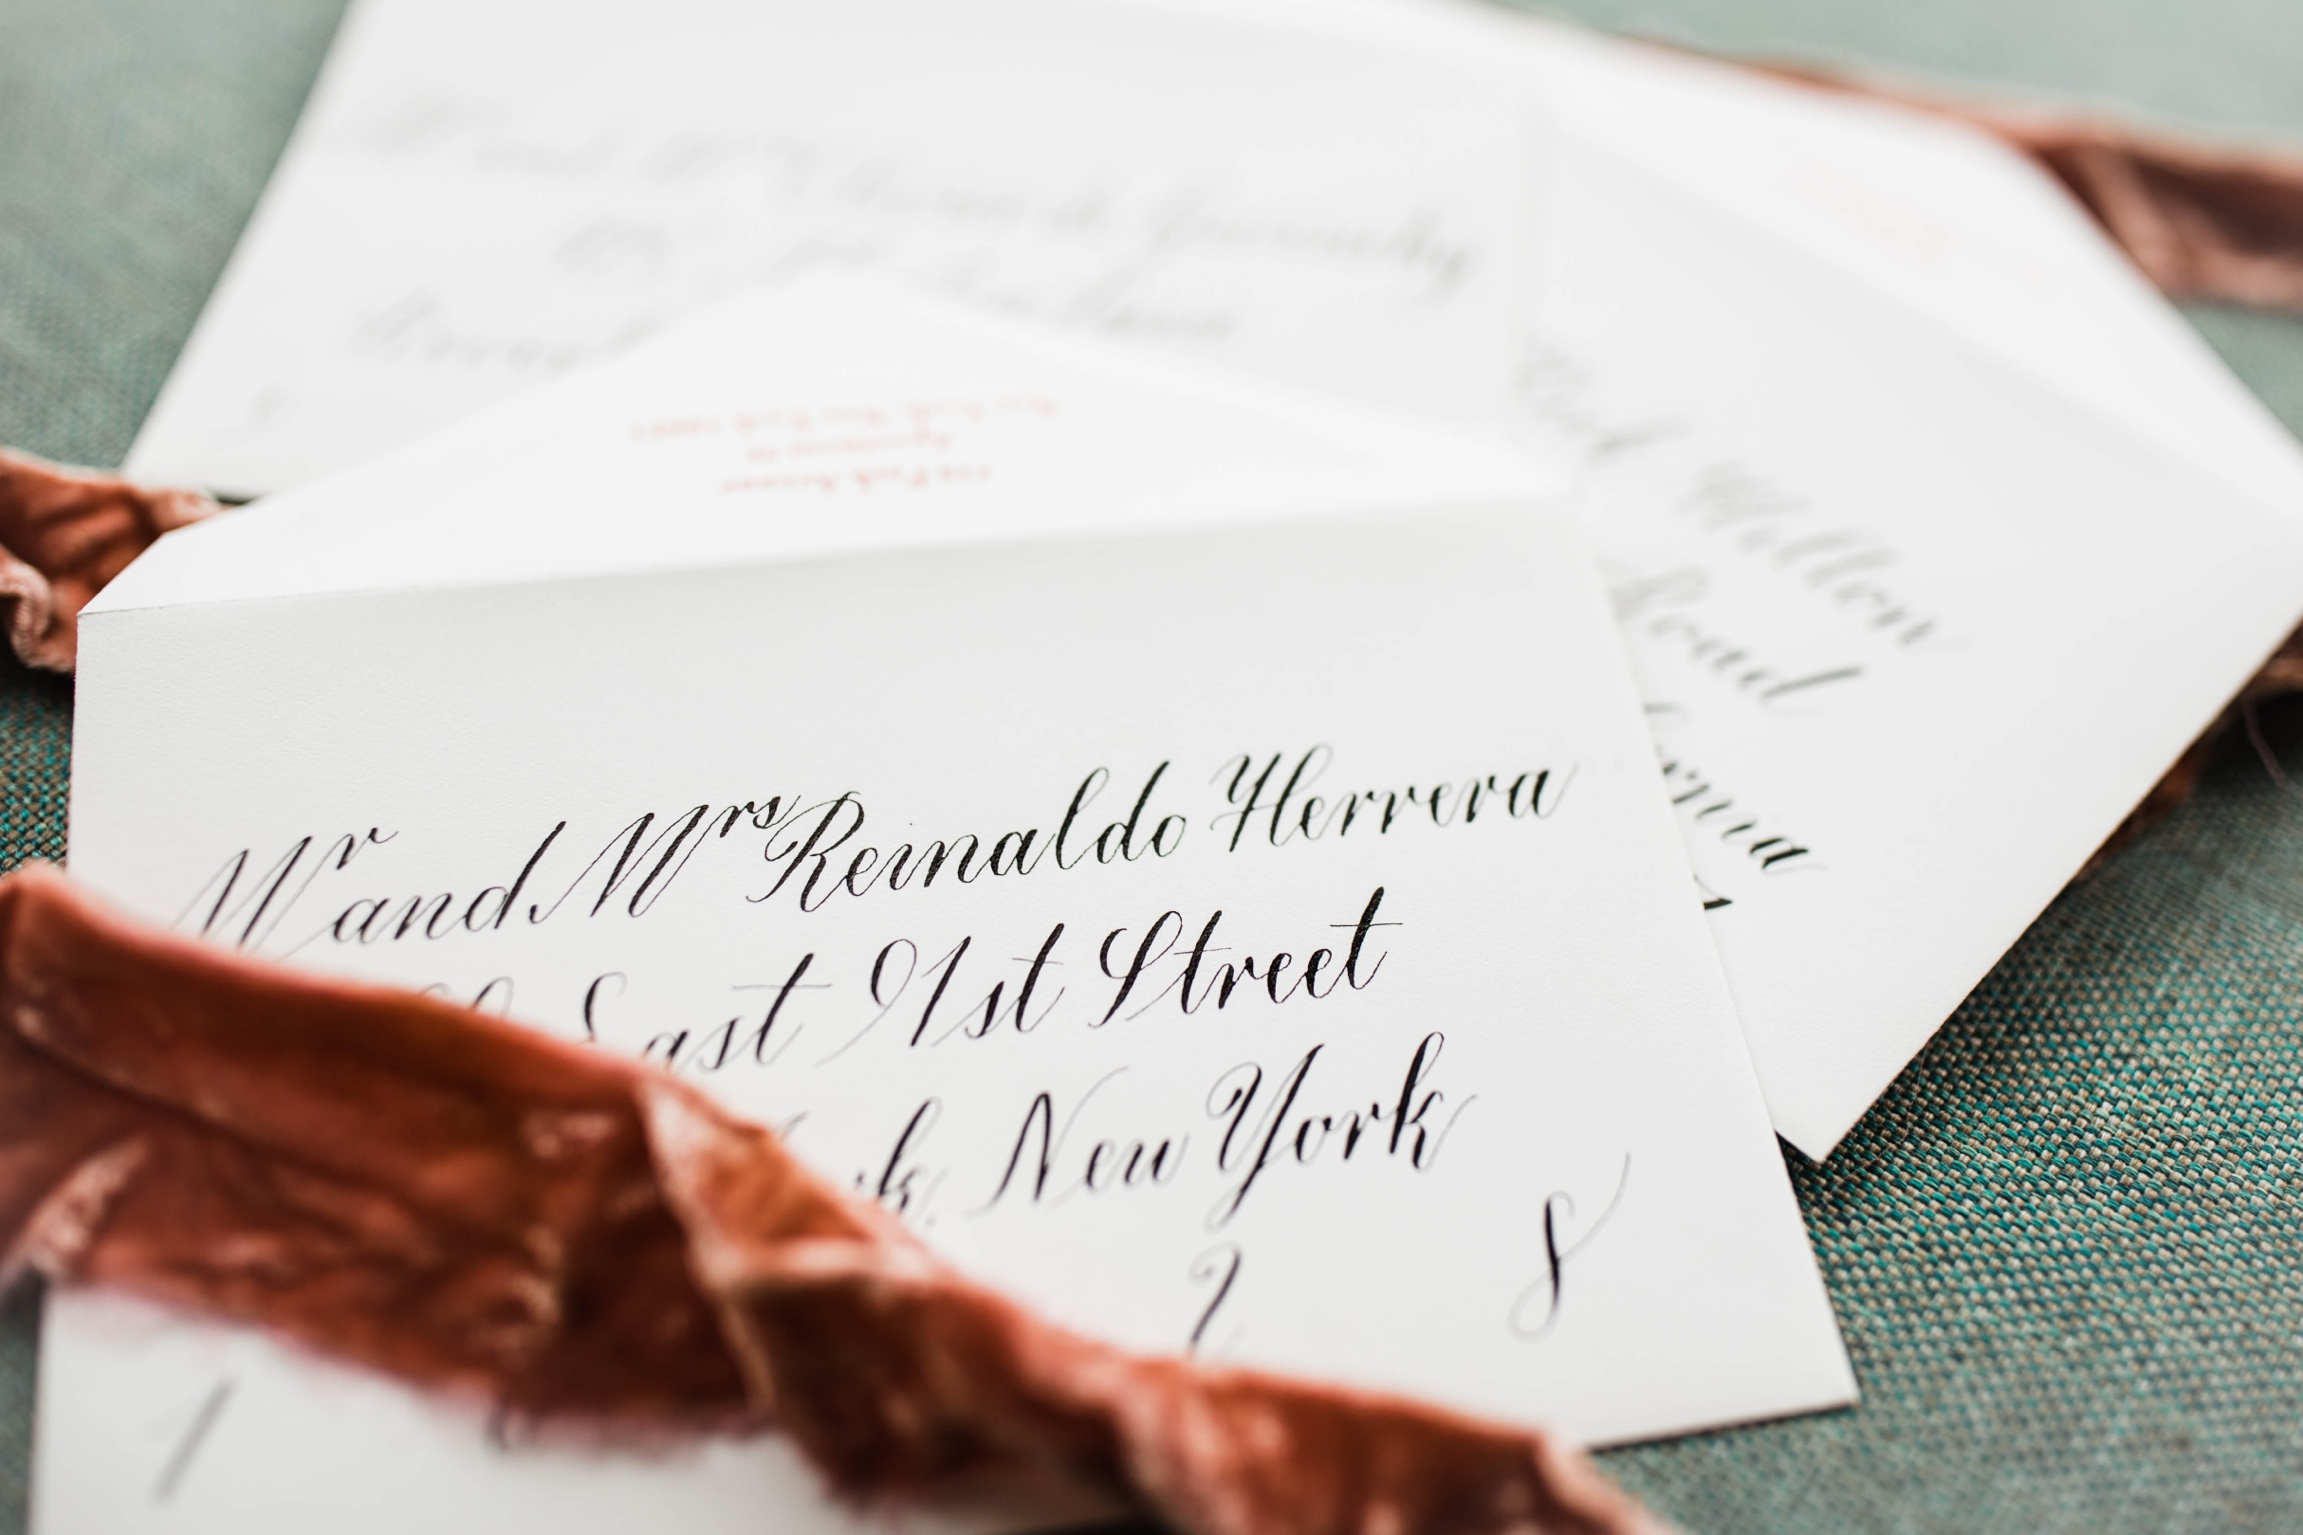 These envelopes were hand lettered in Traditional Copperplate style for an event in the New York area.  The envelopes set the tone for the gorgeous event that took place in February of 2019.